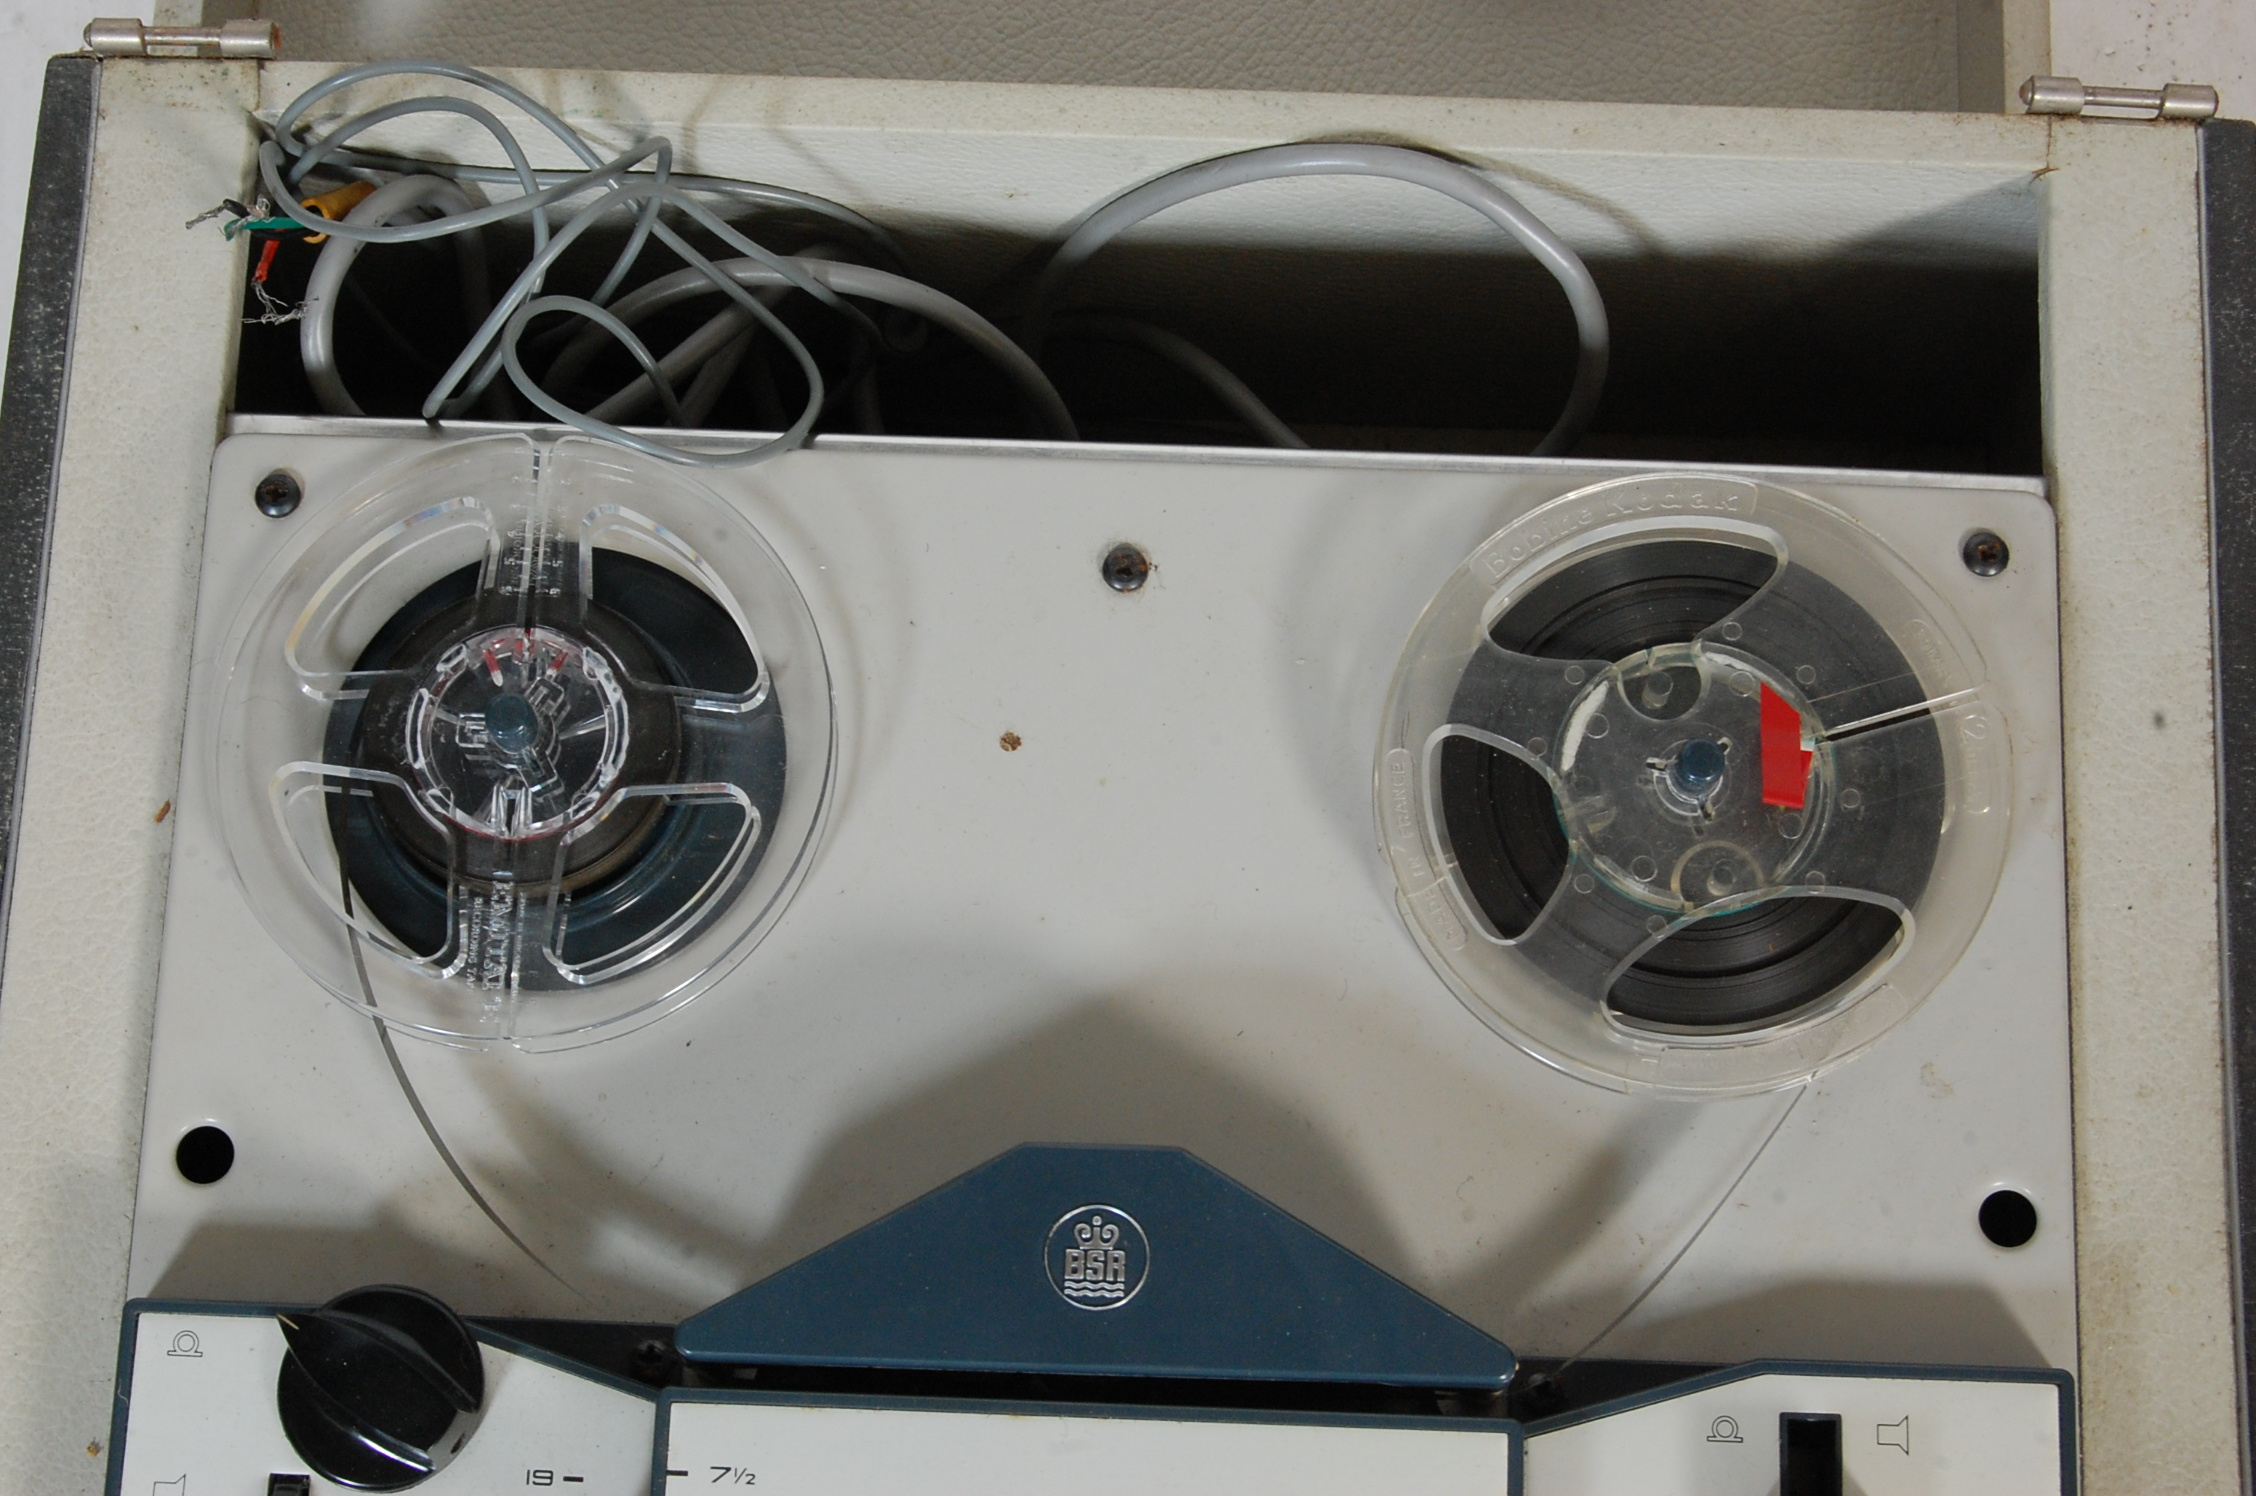 ELIZABETHAN LZ 34 REEL TO REEL PLAYER AND TAPES - Image 3 of 5